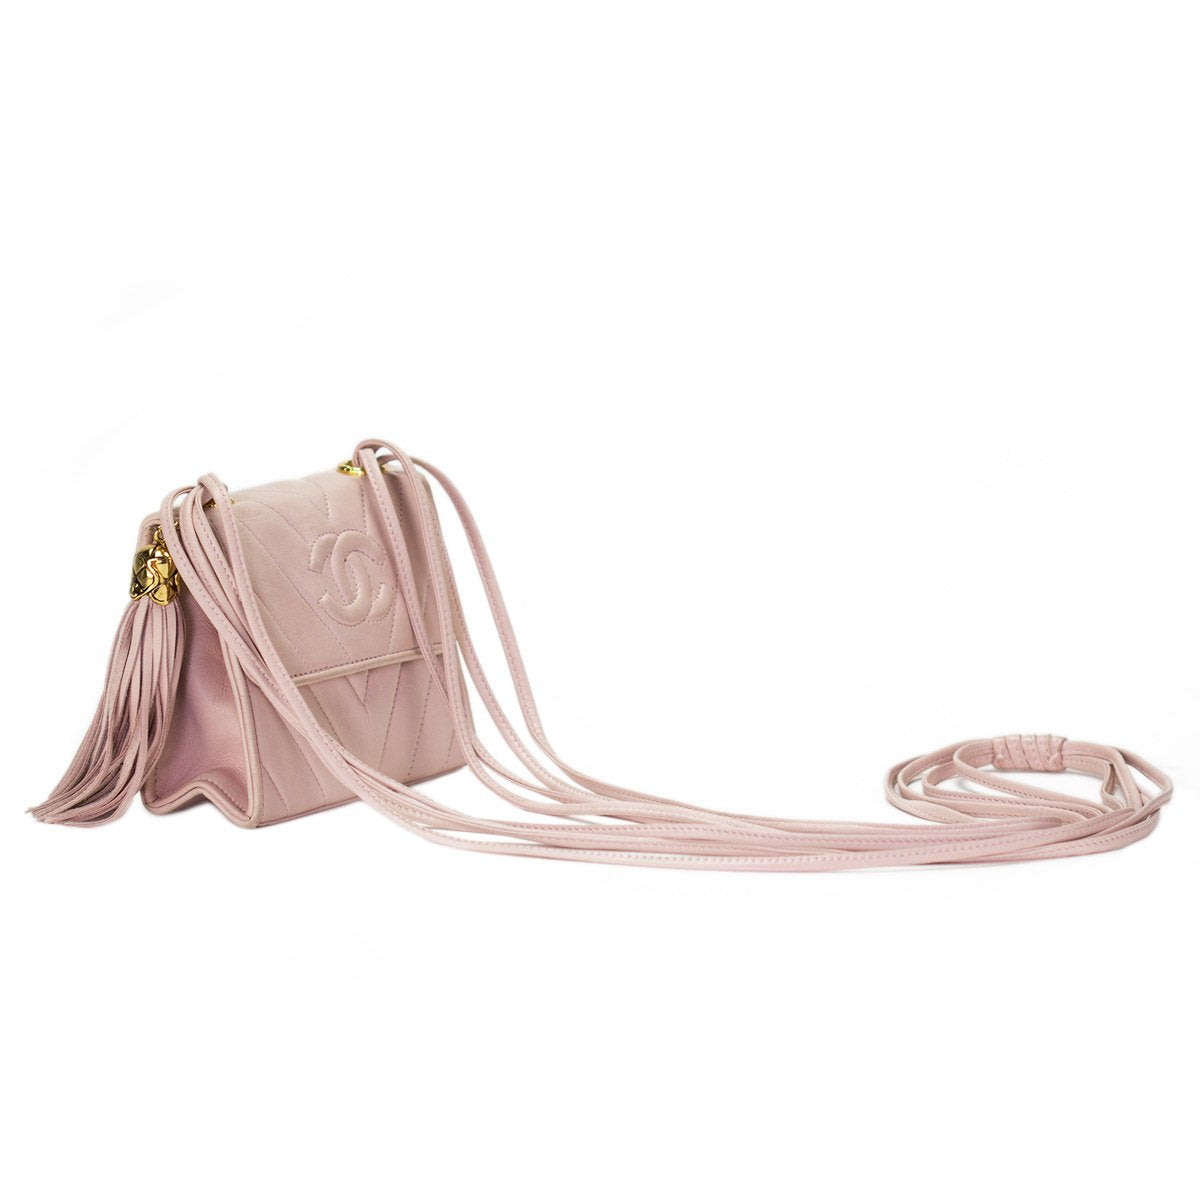 Chanel Soft Pink Chevron Fringe Lambskin Flap Bag